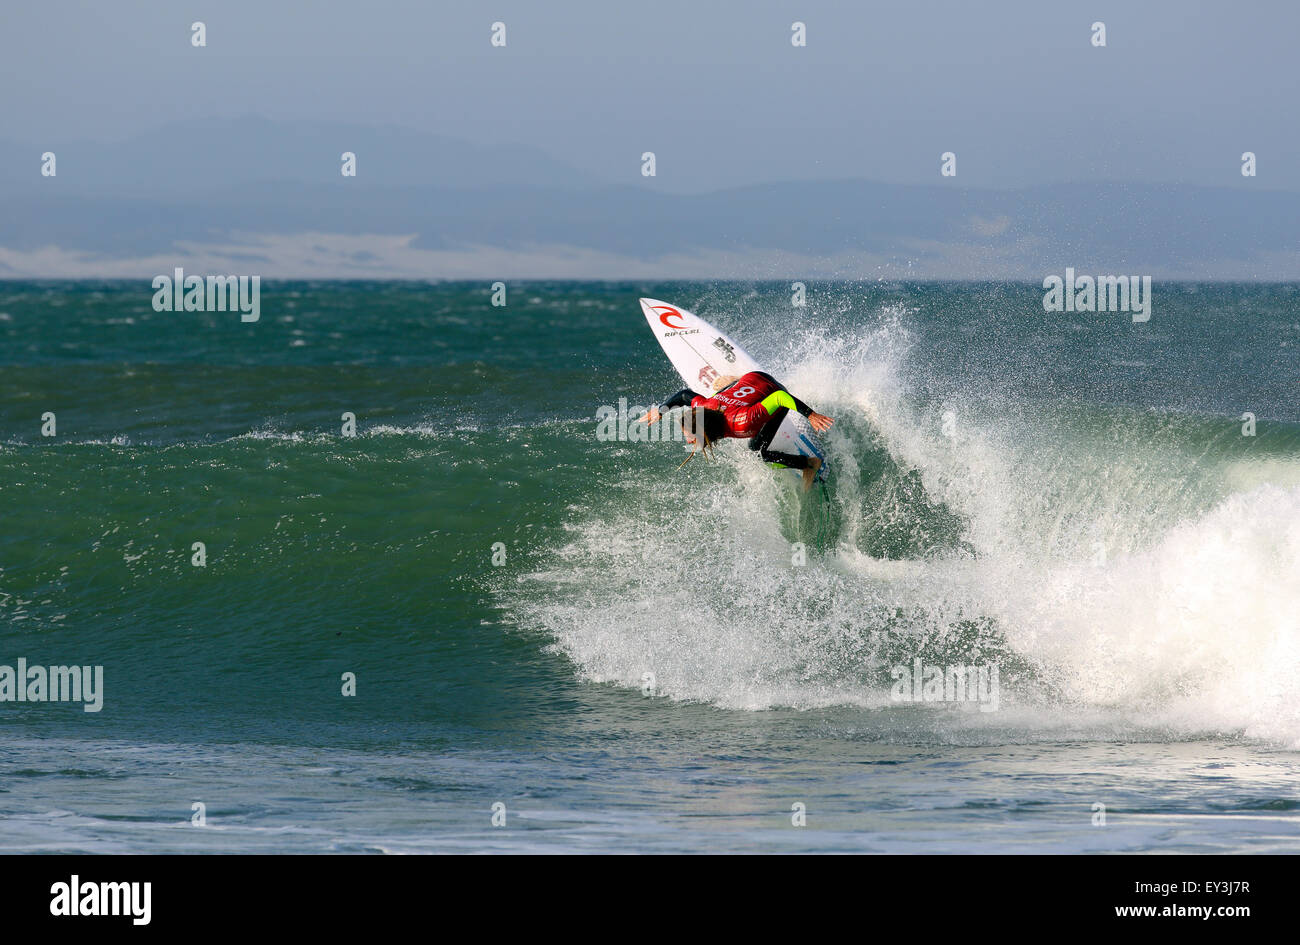 Australian professional surfer Matt Wilkinson in action at the 2015 J-Bay Open surfing event in Jeffreys Bay, South - Stock Image